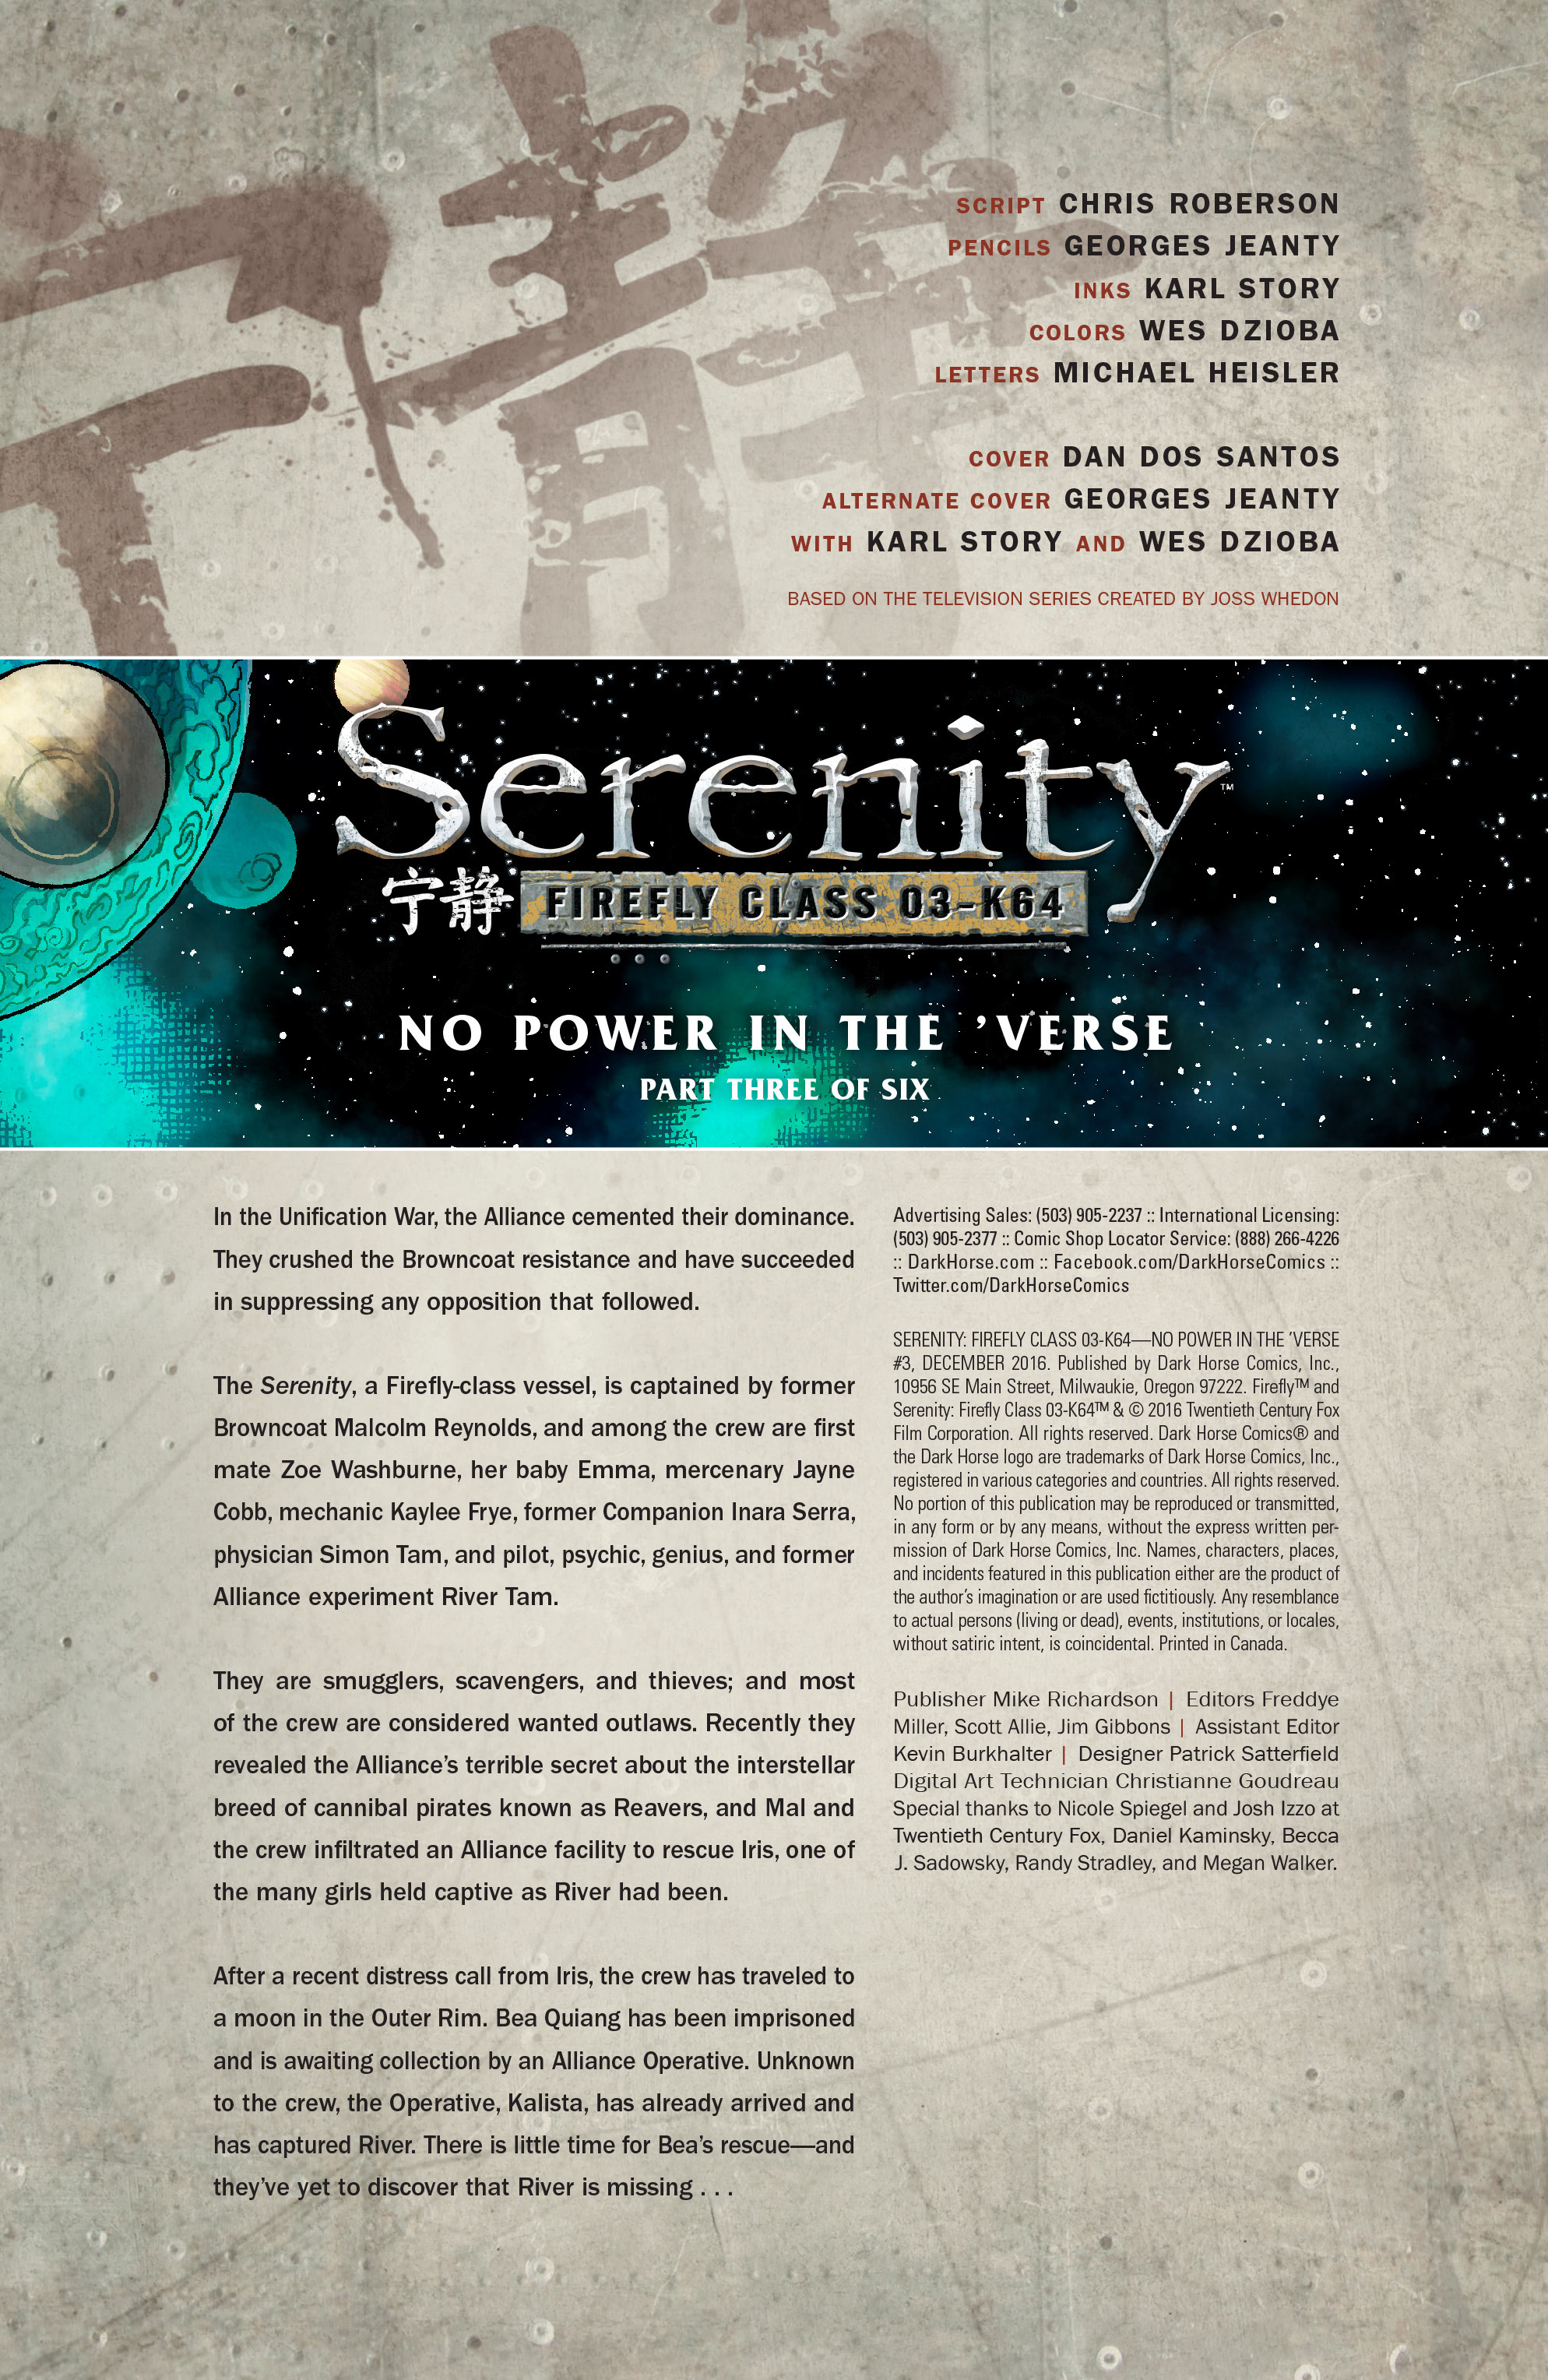 Read online Serenity: Firefly Class 03-K64 – No Power in the 'Verse comic -  Issue #3 - 3